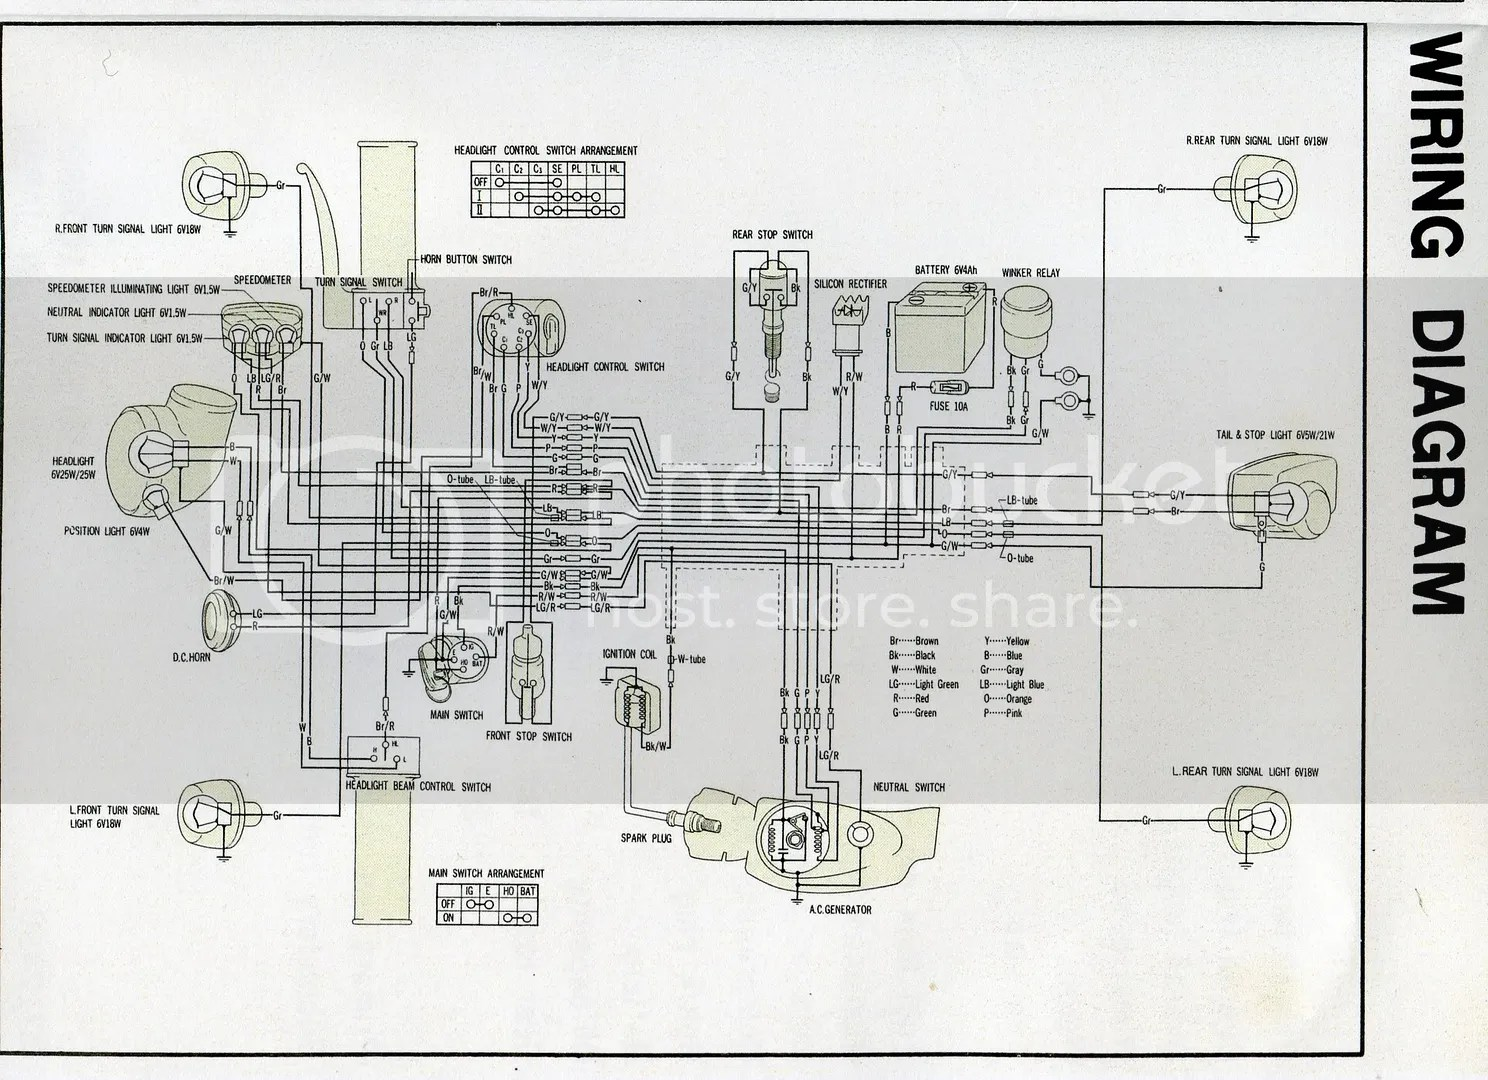 Honda Pport Parts Diagram, Honda, Free Engine Image For